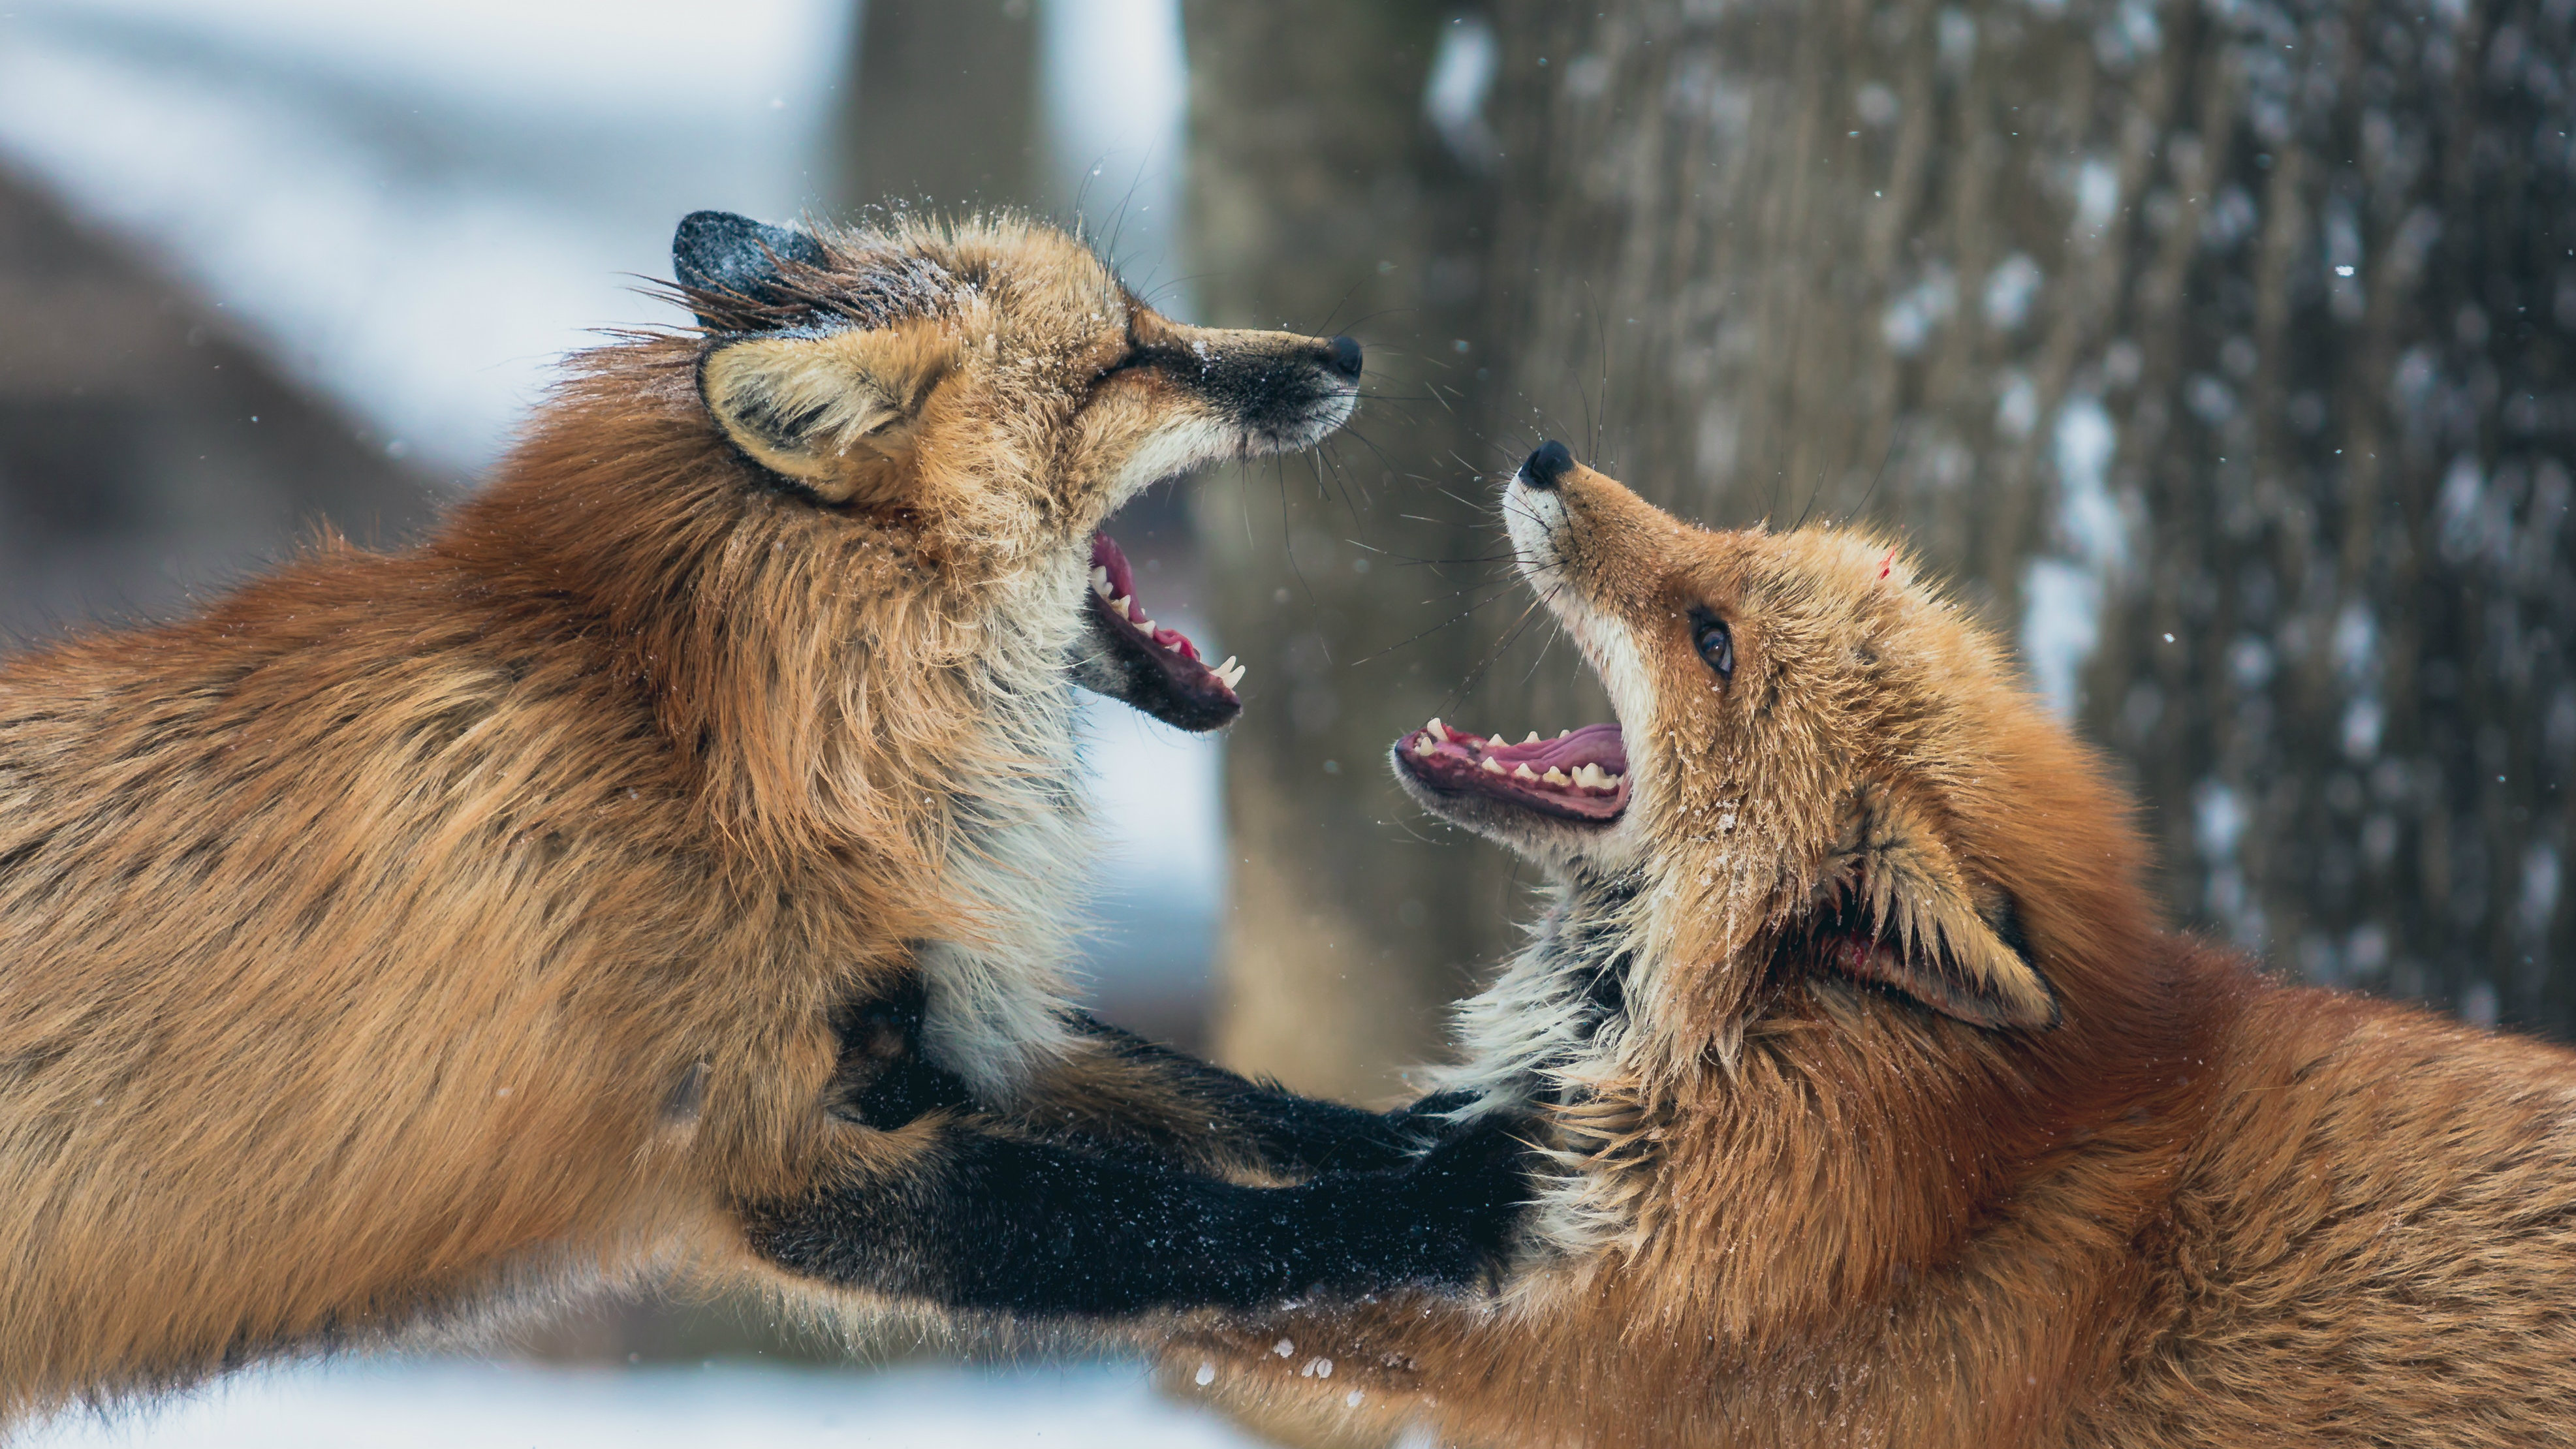 Two foxes fight